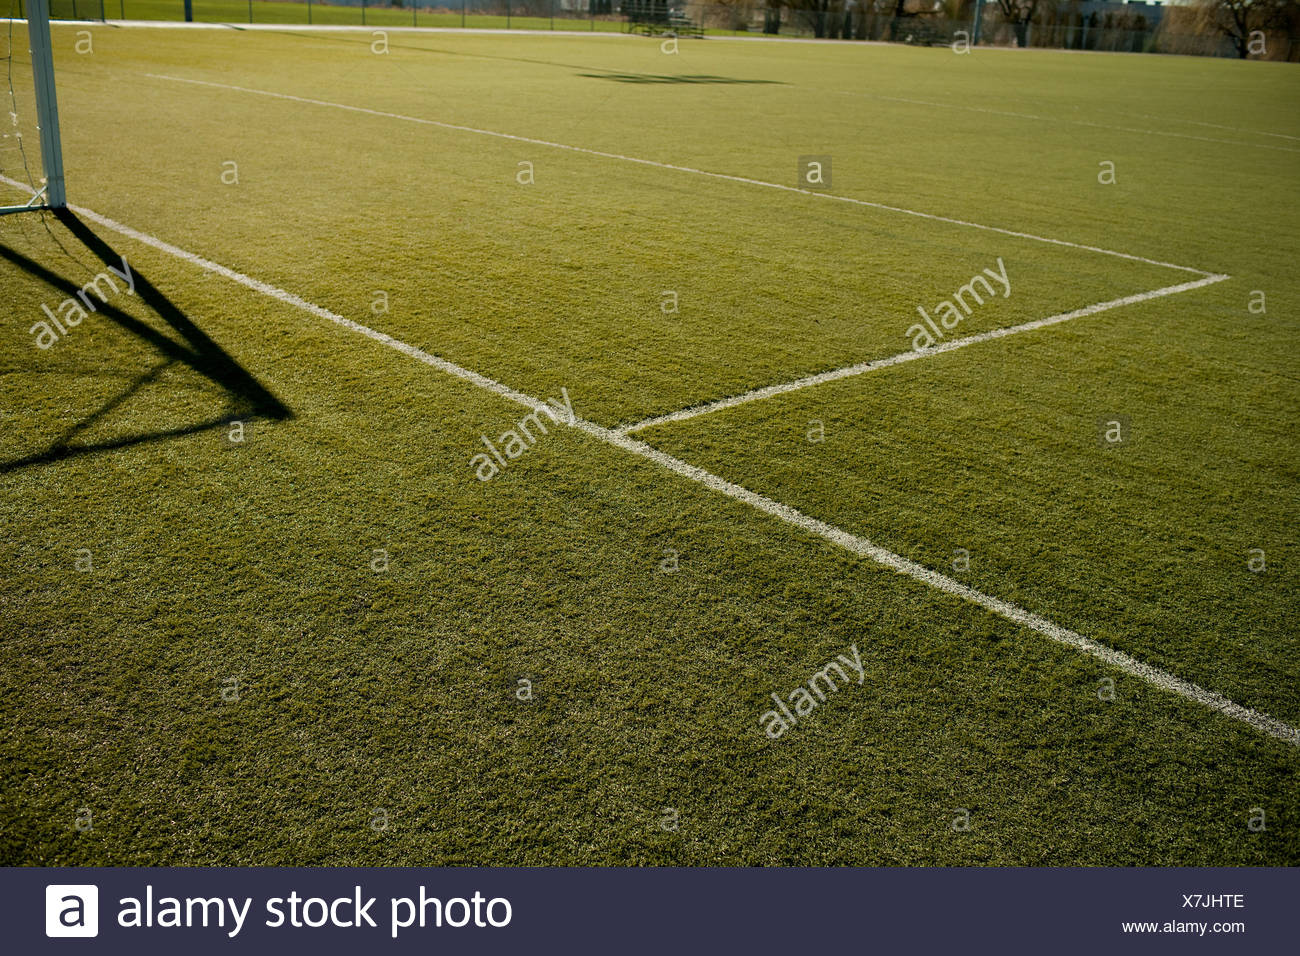 Line markings on football pitch - Stock Image